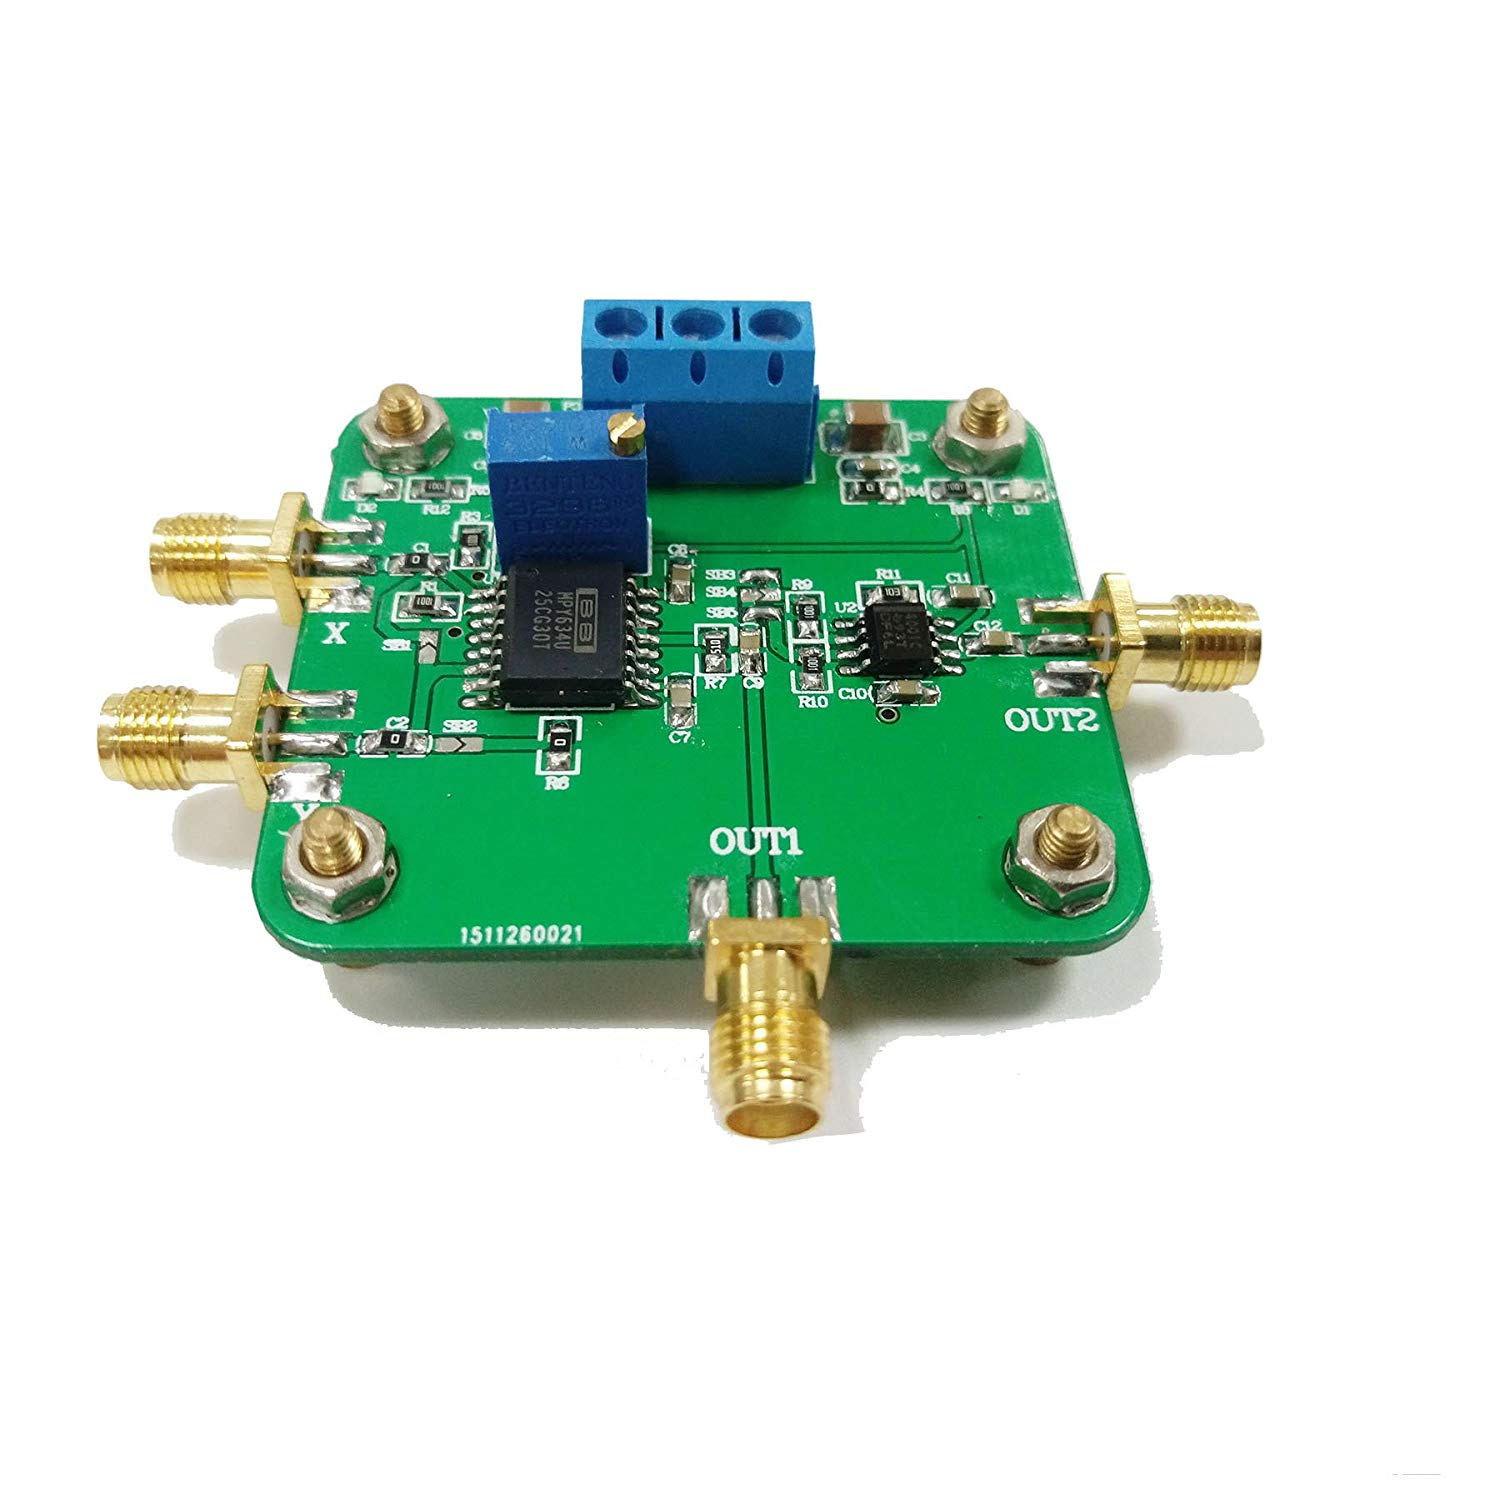 Cheap Frequency Amplifier Find Deals On Line At Multiplication Get Quotations Taidacent Mpy634 Four Quadrant Aanalog Multiplier Operational Module Mixing Modulation Demodulation